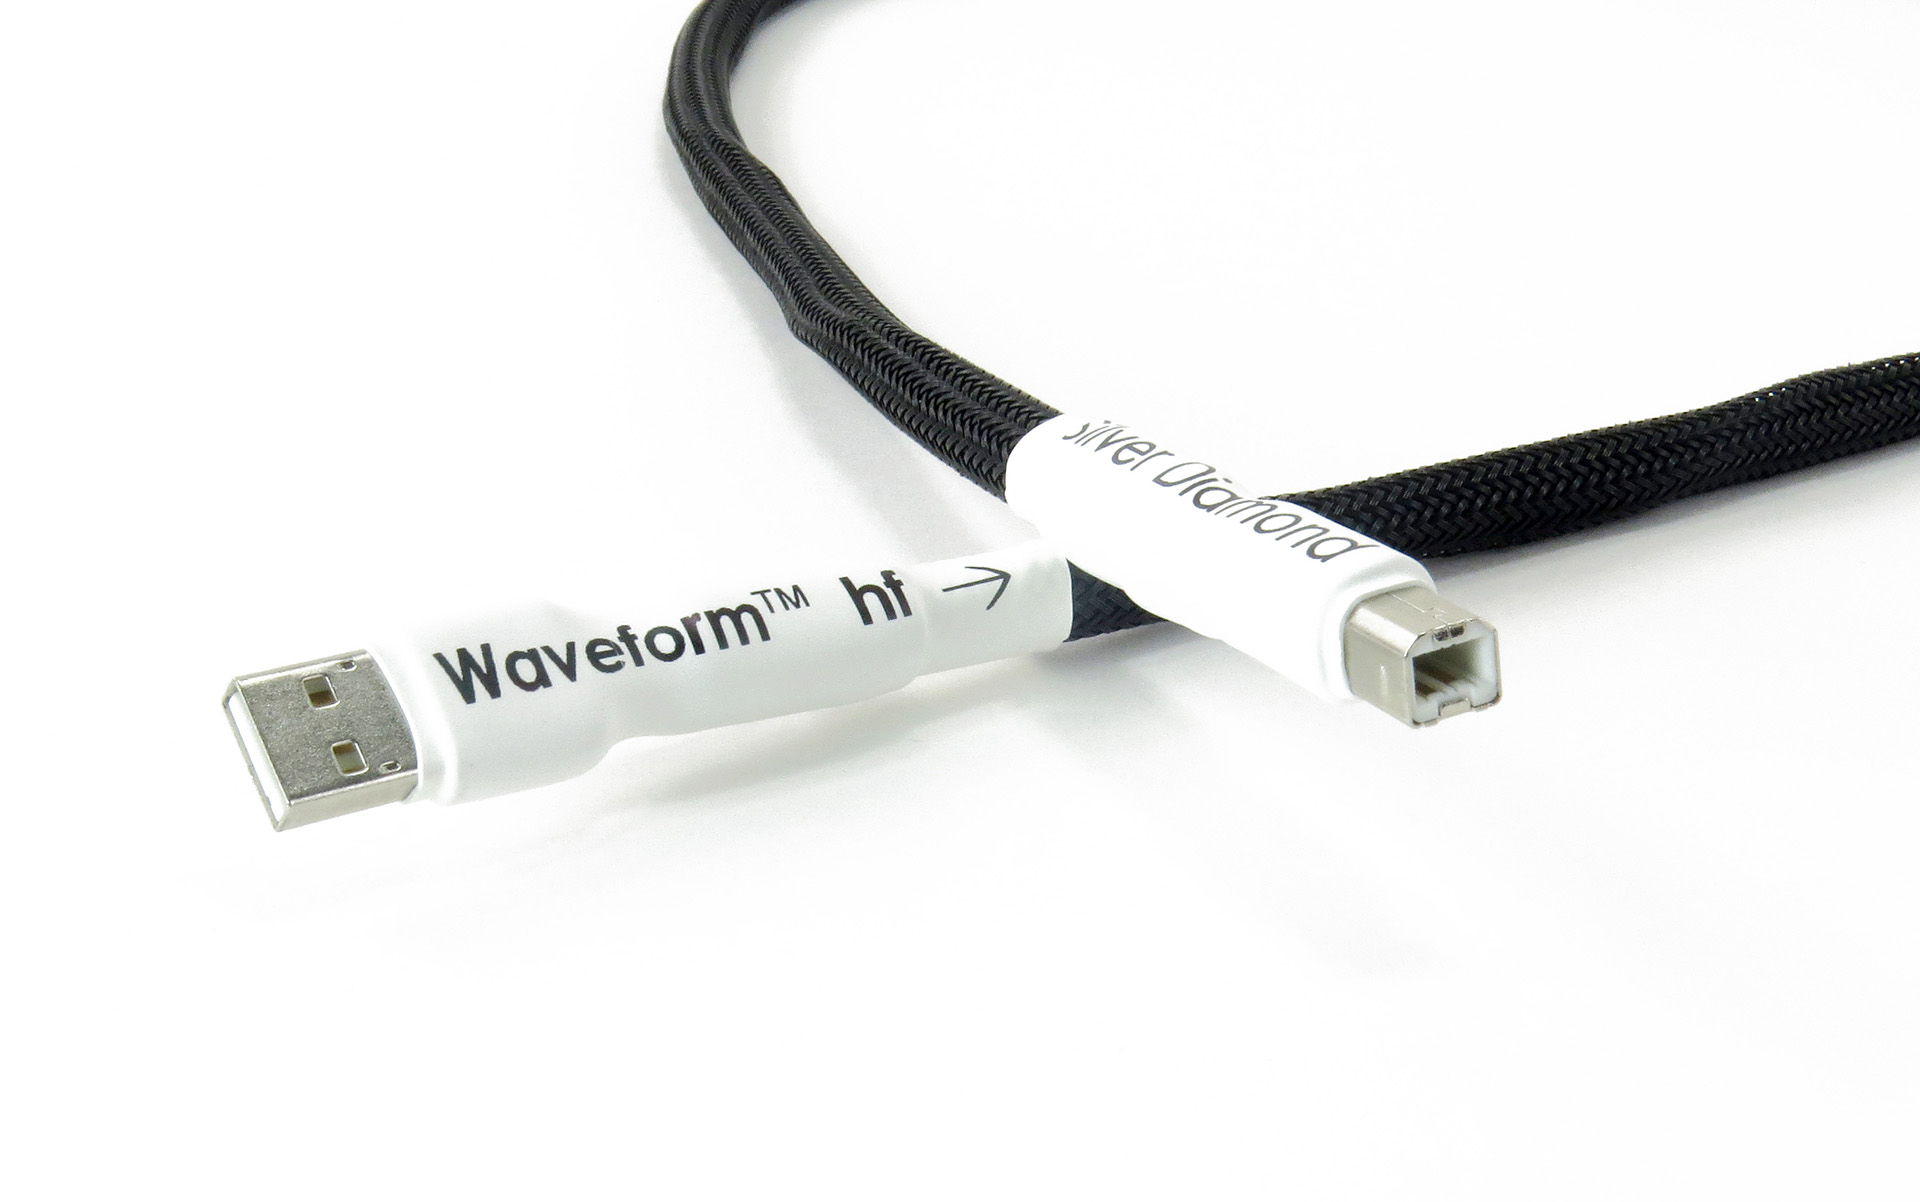 Tellurium Q | Silver Diamond | Waveform™ hf USB Cable